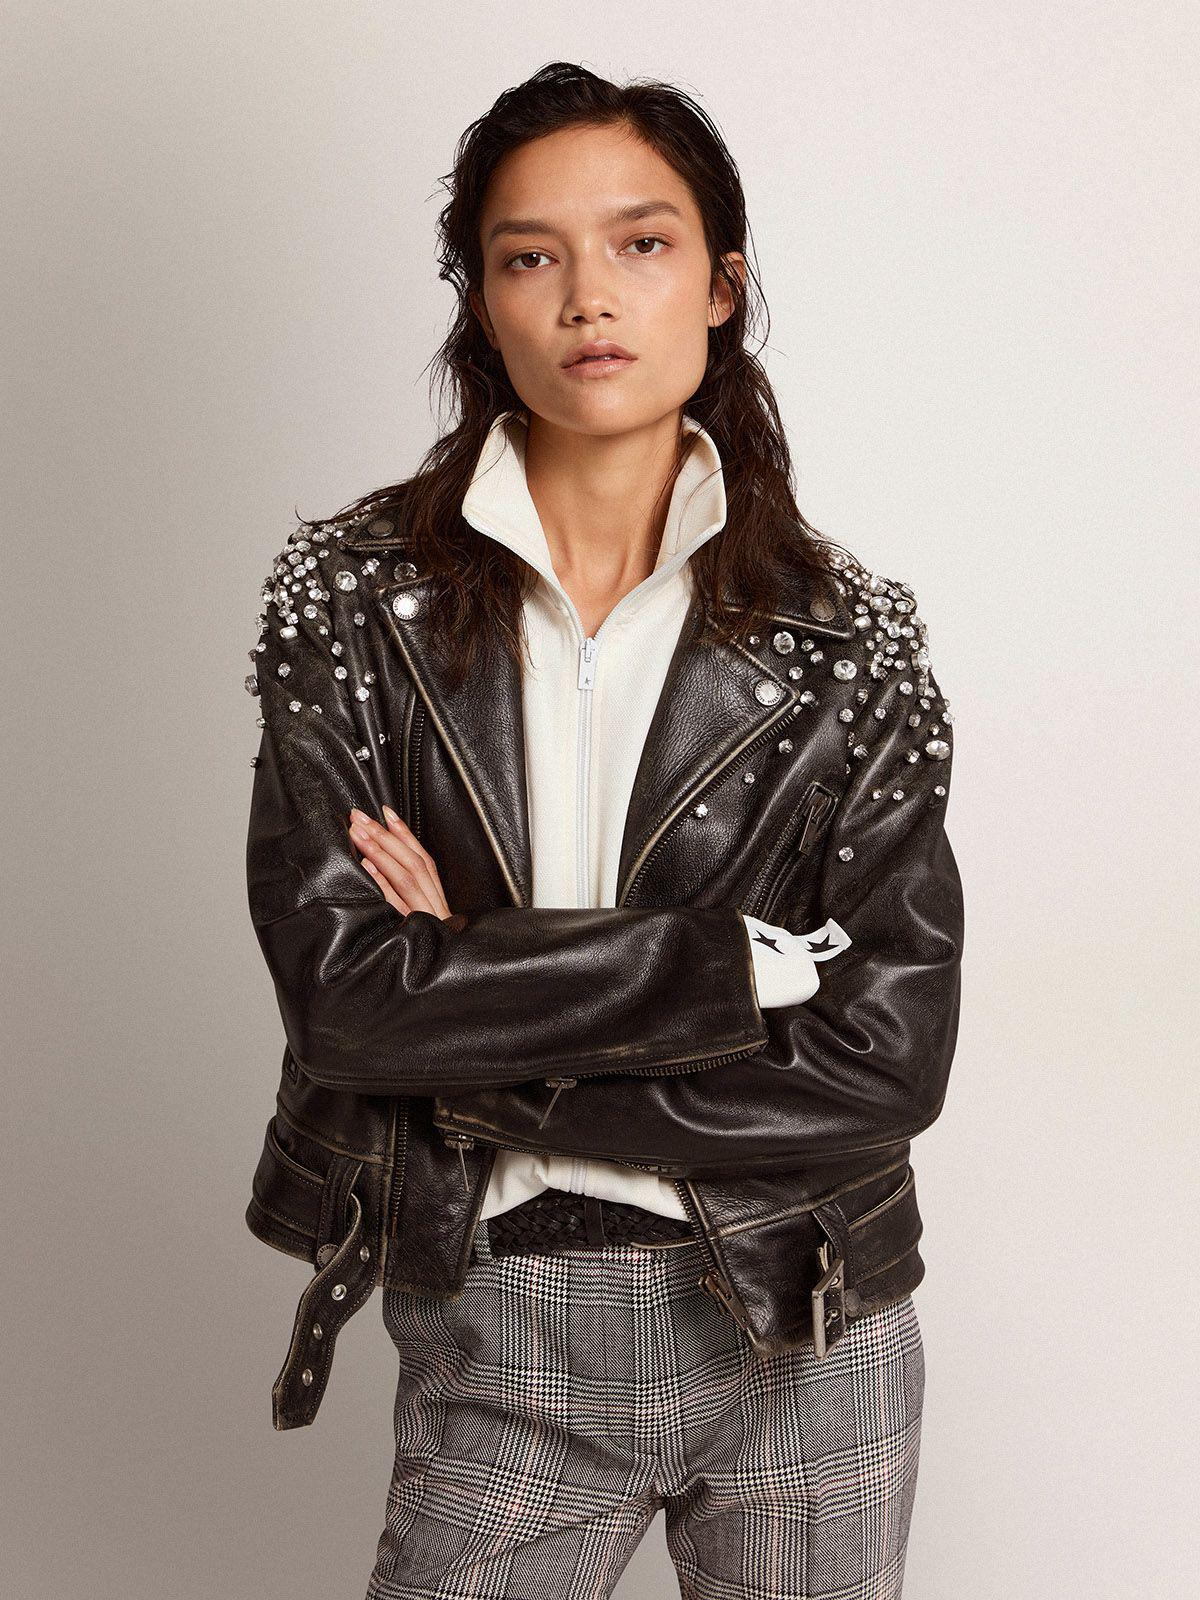 Golden Collection leather biker jacket with distressed treatment and cabochon crystals